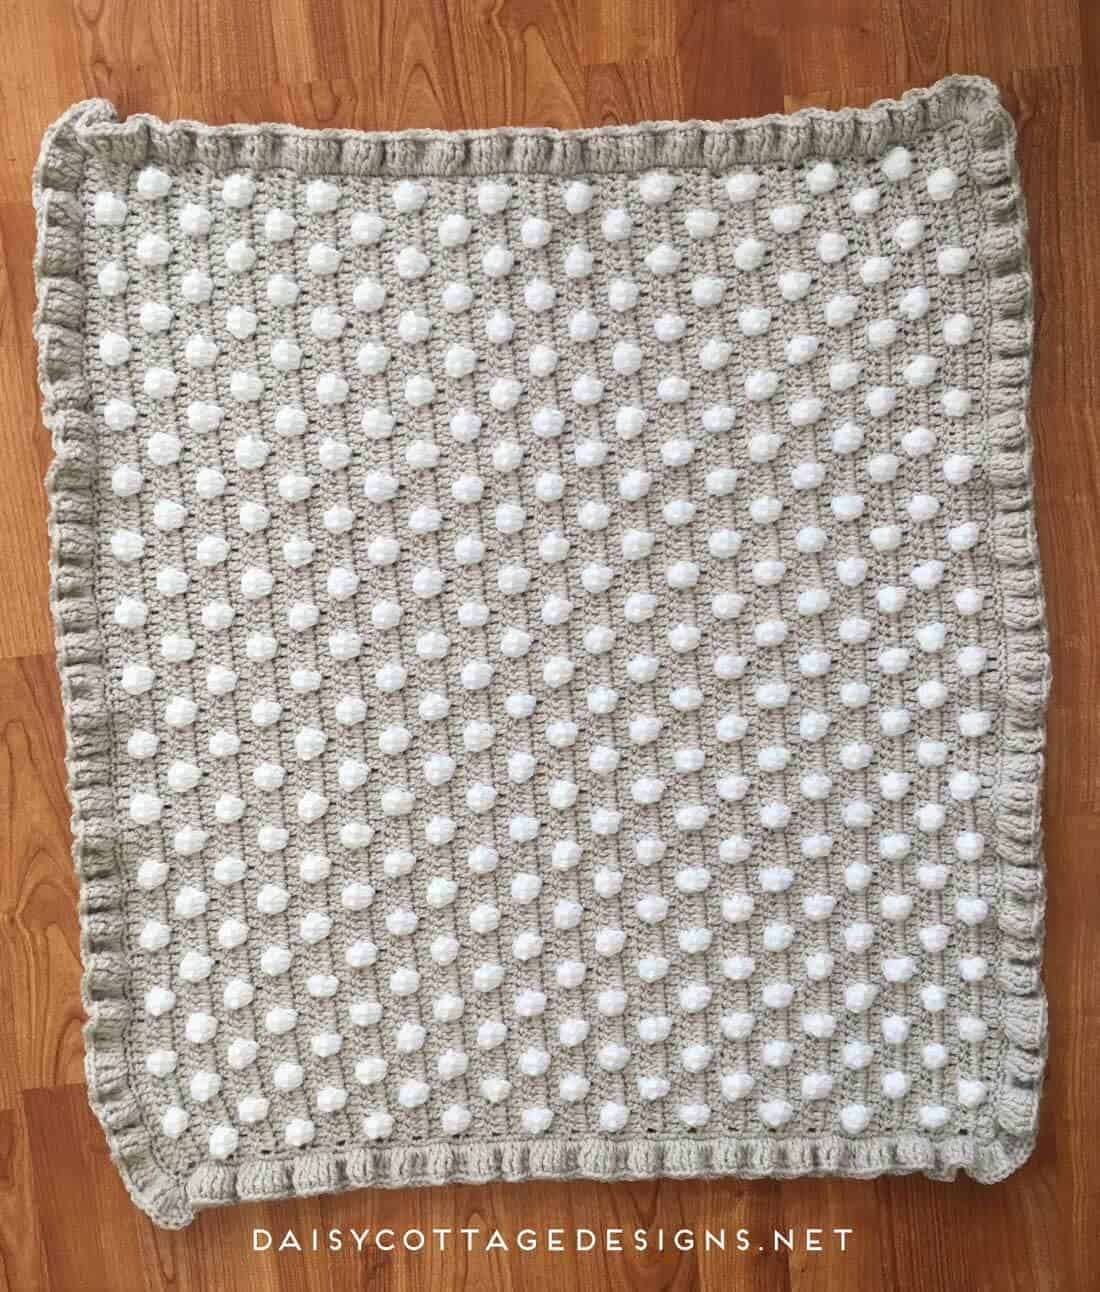 free crochet pattern | crochet blanket pattern | crochet baby blanket | polkadot blanket | Daisy Cottage Designs | Use this free crochet baby blanket pattern to make an adorable baby shower gift. Or, make a larger size and throw it over your couch, chair, or bed. It's a beautiful pattern with detailed instructions and a video tutorial.